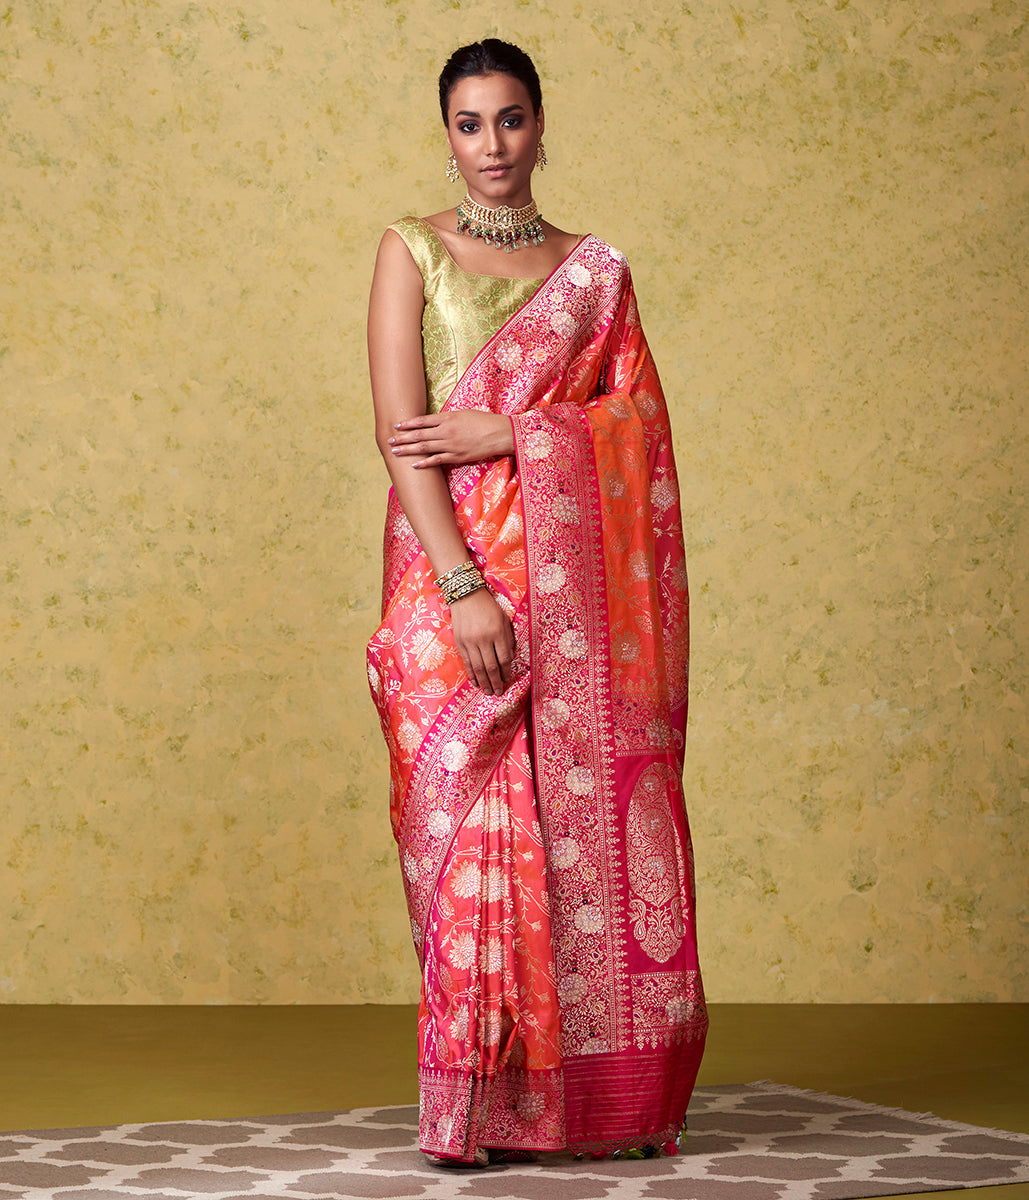 Handwoven Pink and Orange Banarasi Jangla with Bright Pink Border and Pallu